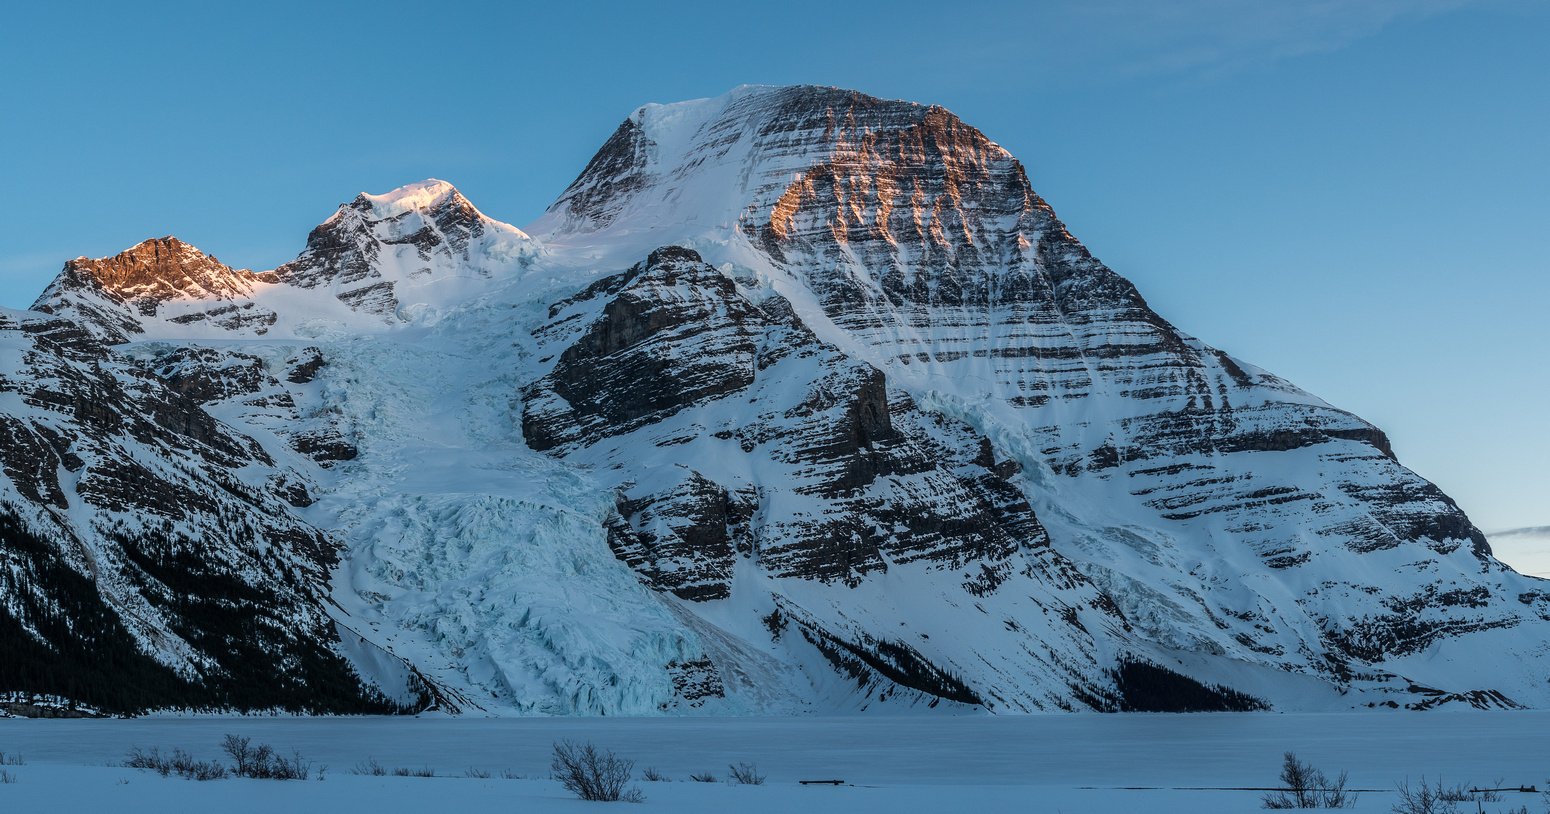 Dying light on Waffl, The Helmet and Robson from the Berg Lake shore.